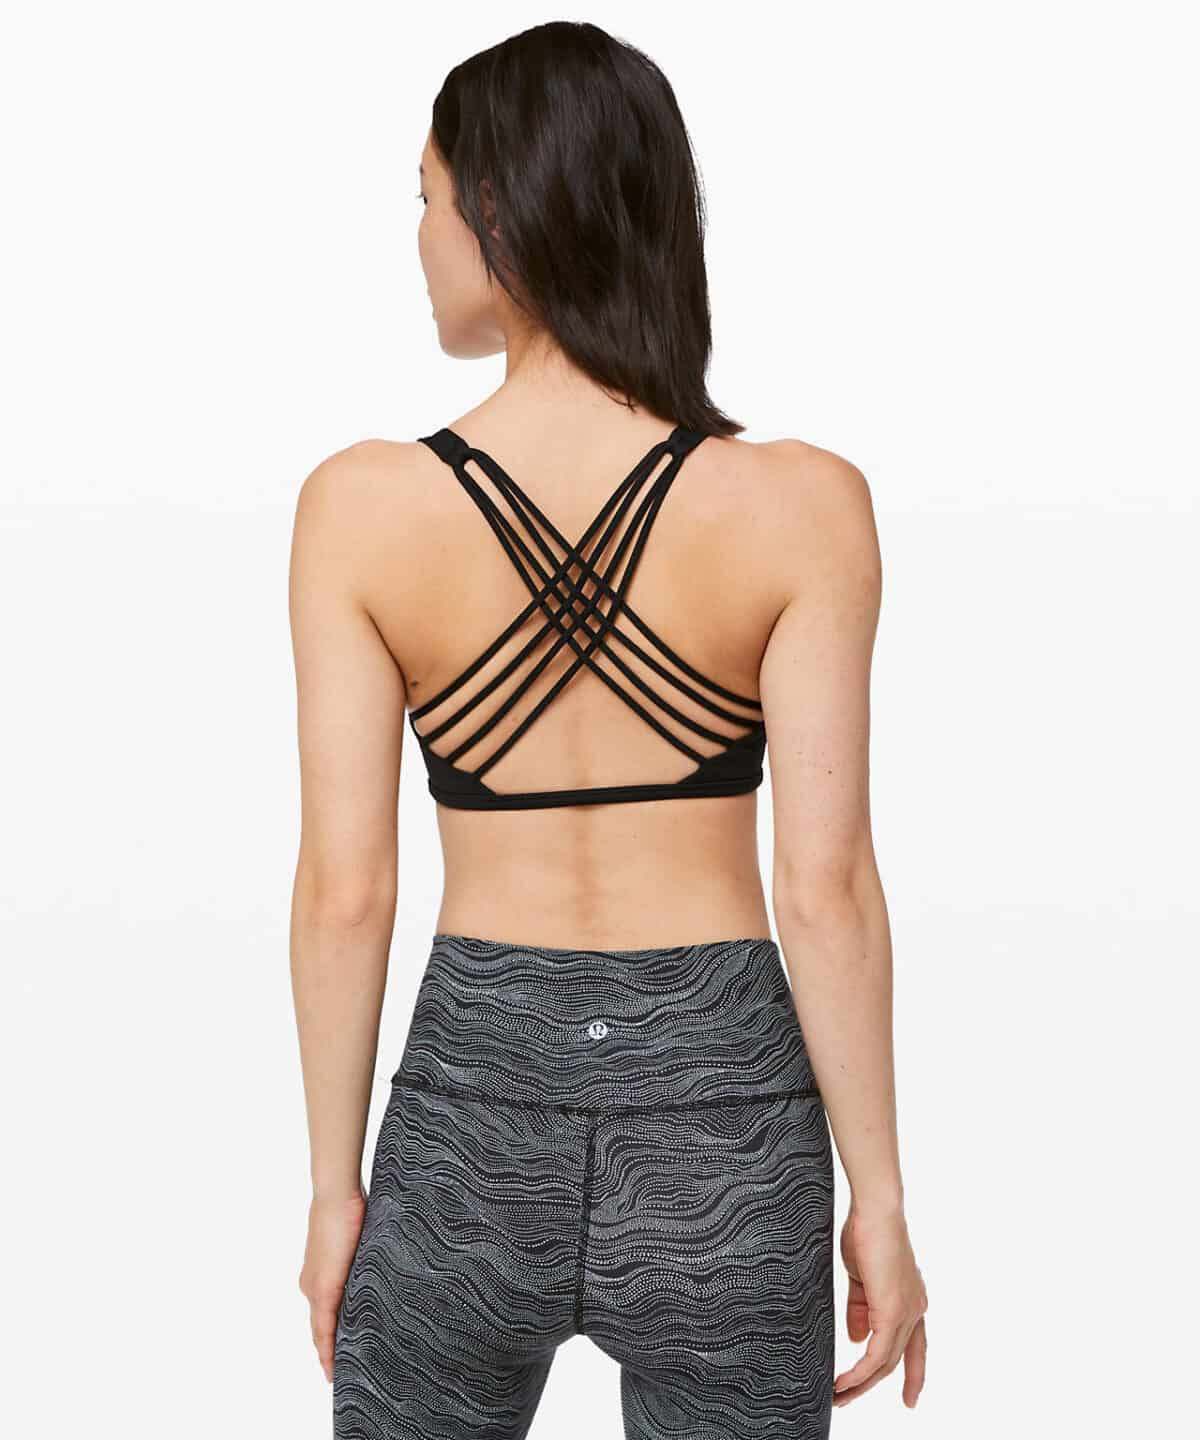 Workout Gear Inspired By Lululemon On Amazon An Unblurred Lady